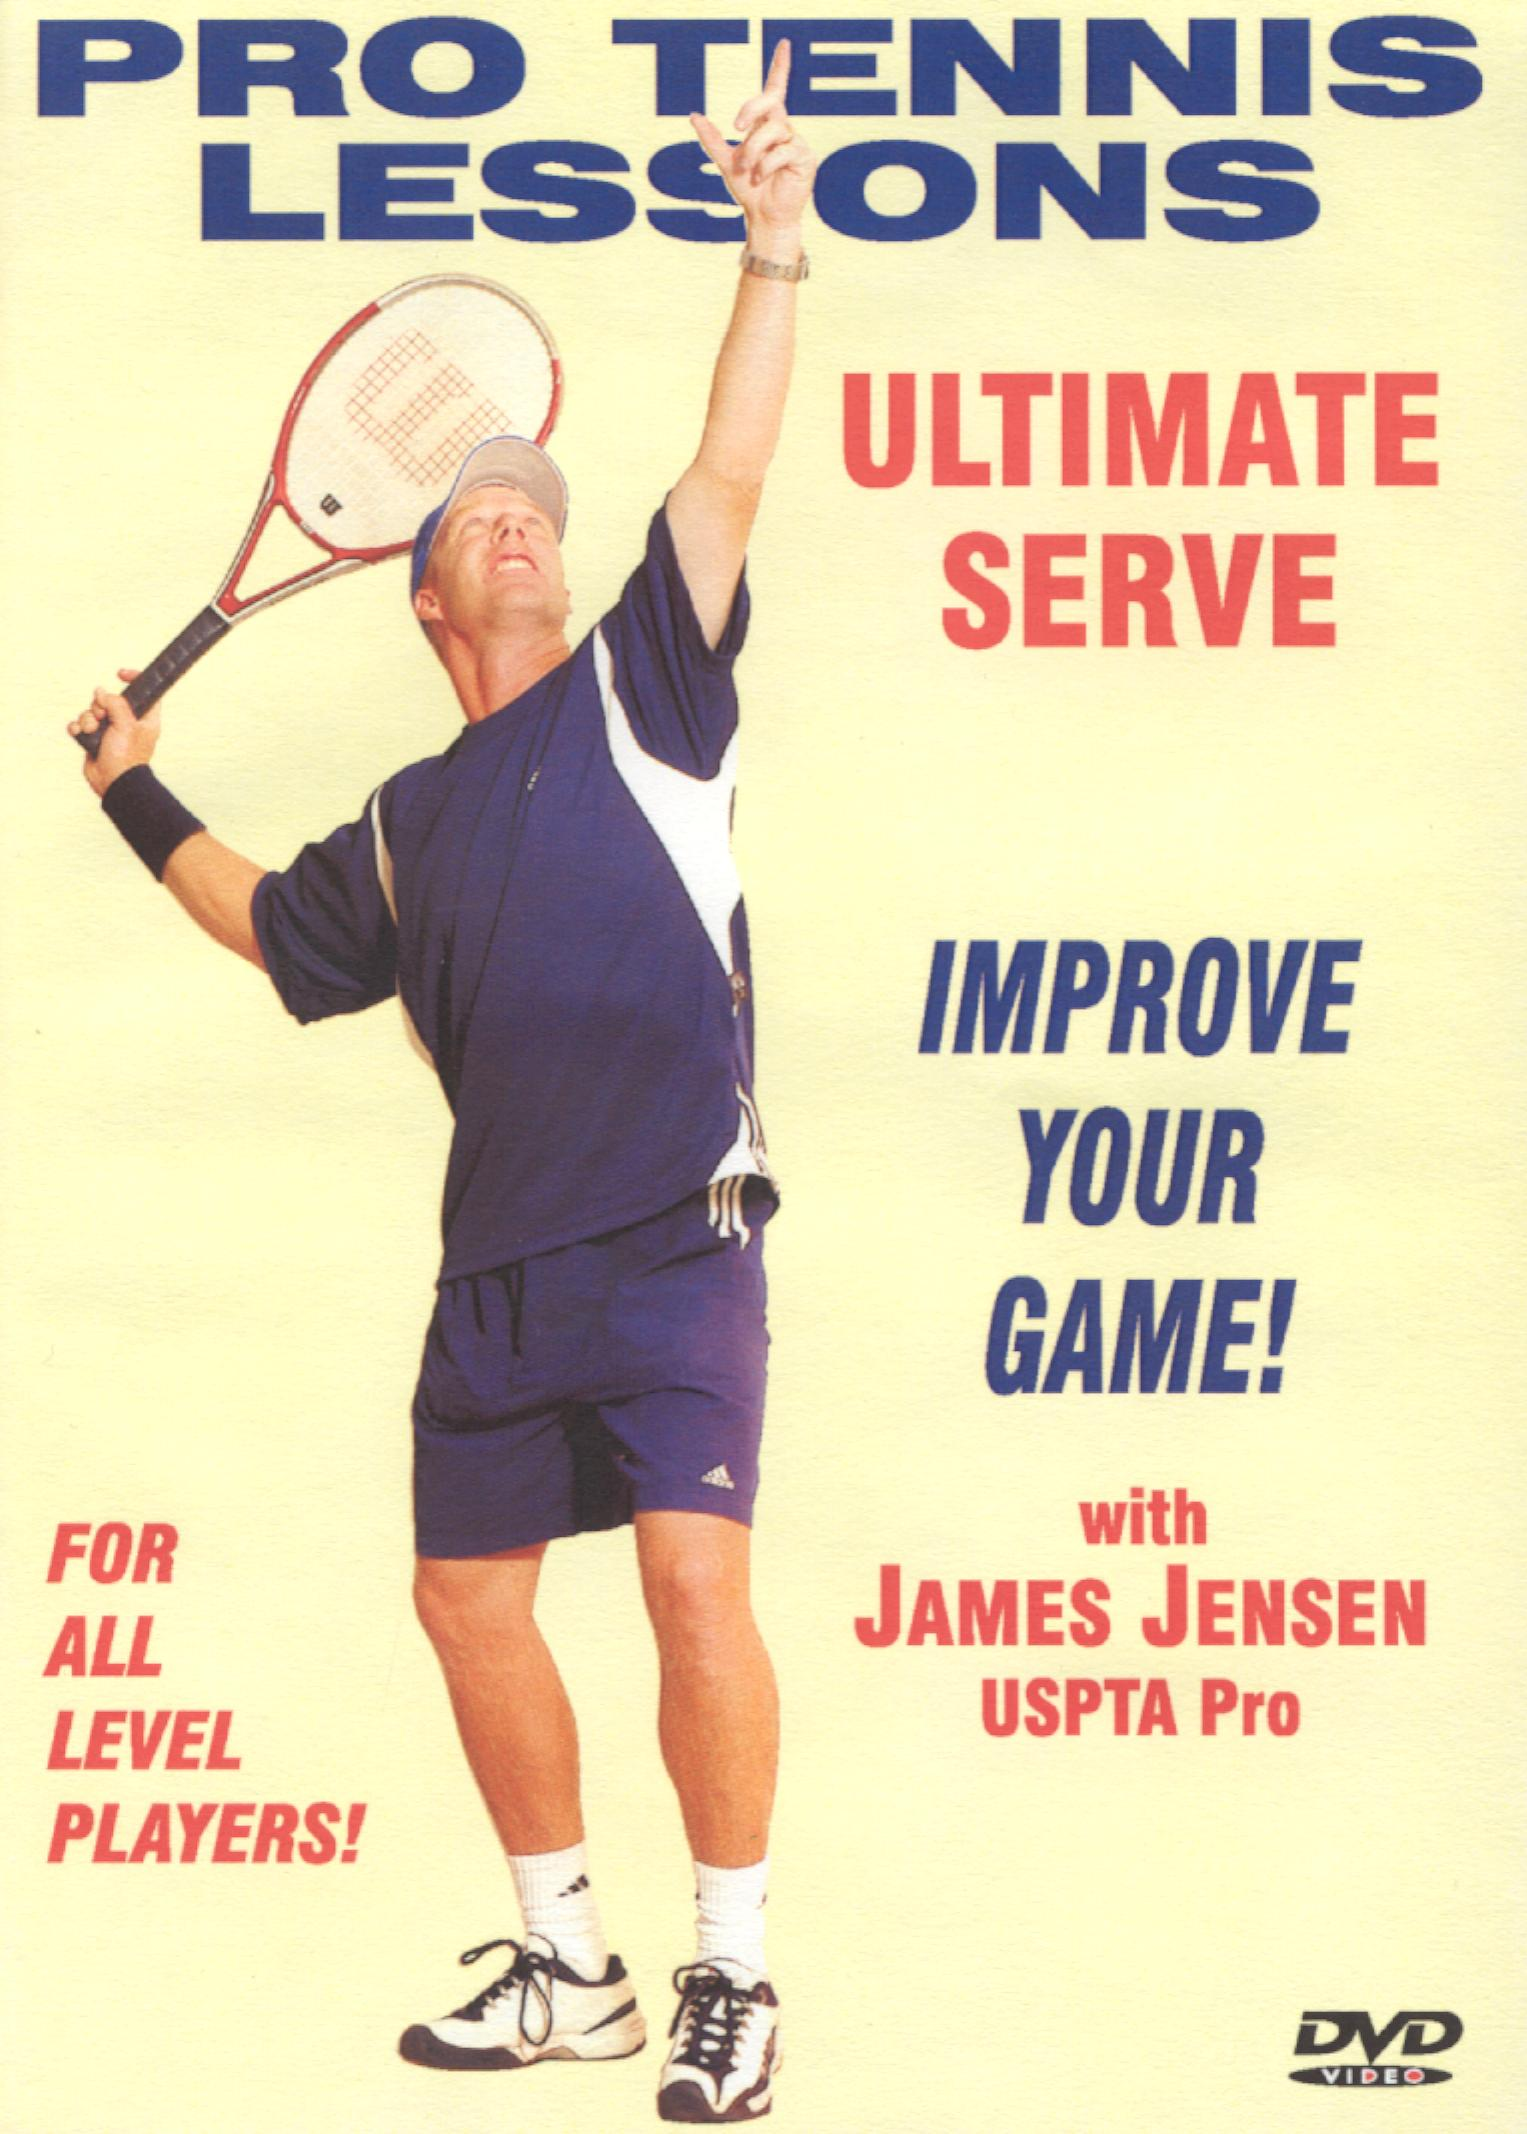 Pro Tennis Lessons: Ultimate Serve